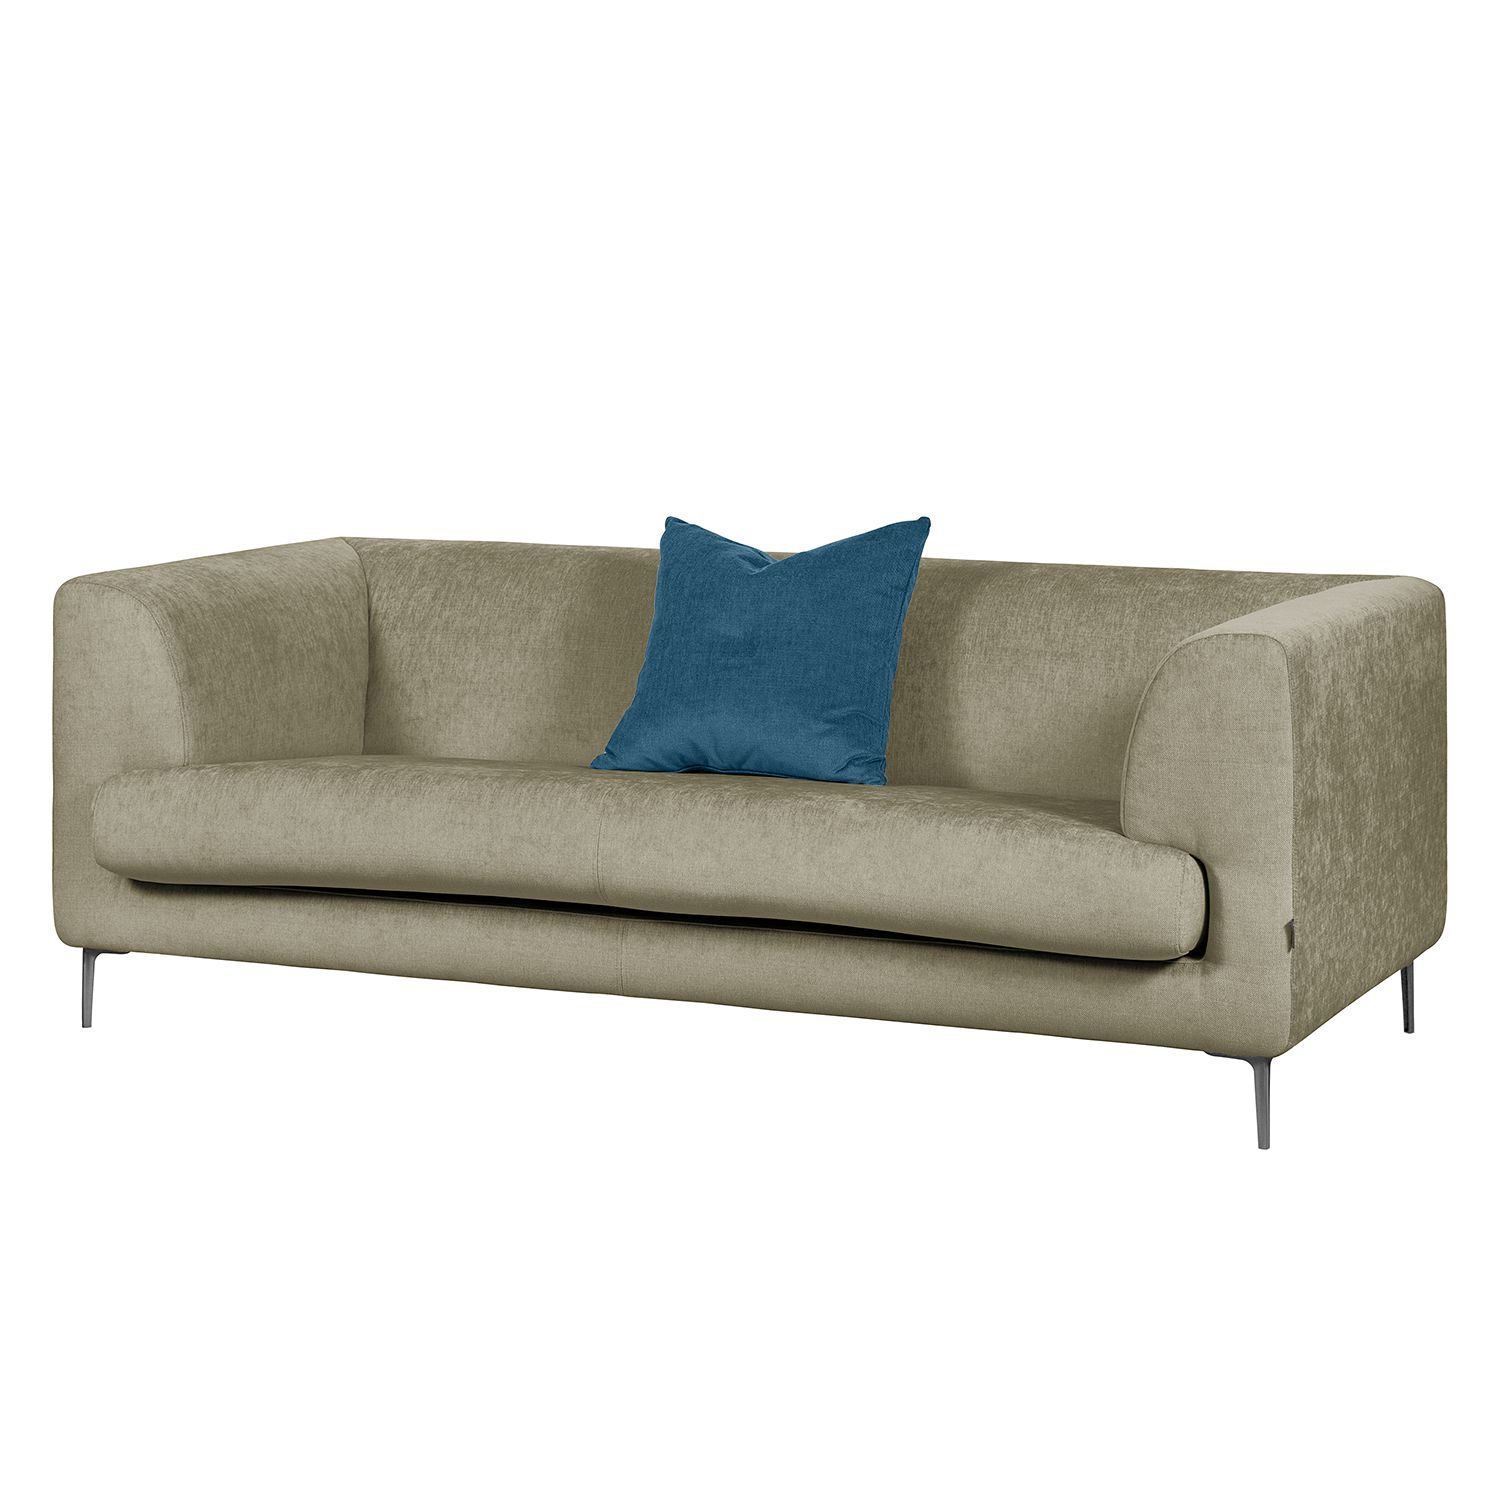 Sofa Sombret (2,5-Sitzer) - Webstoff - Warmes Beige, Says Who